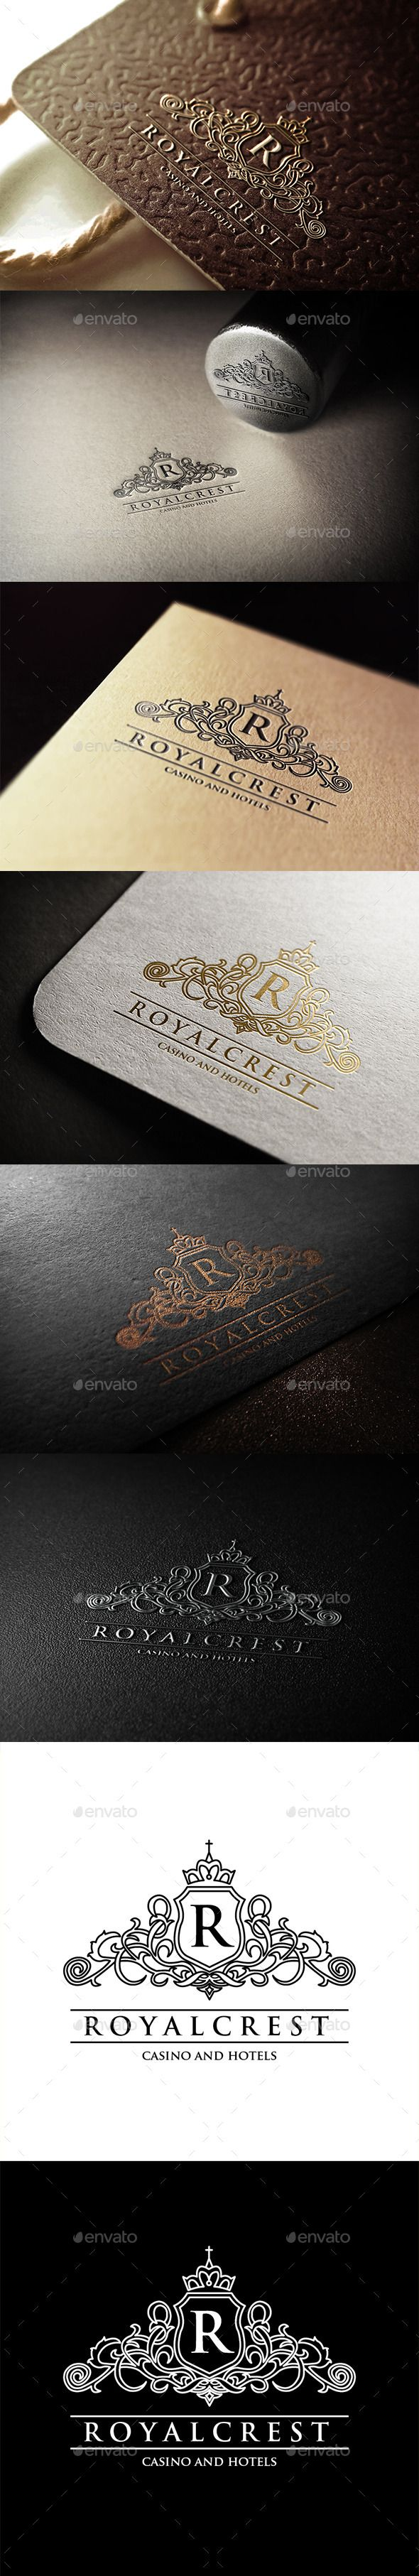 Royal Crest Hotels and Casino Logo — Vector EPS #hotels #cafe • Available here → https://graphicriver.net/item/royal-crest-hotels-and-casino-logo/11257581?ref=pxcr